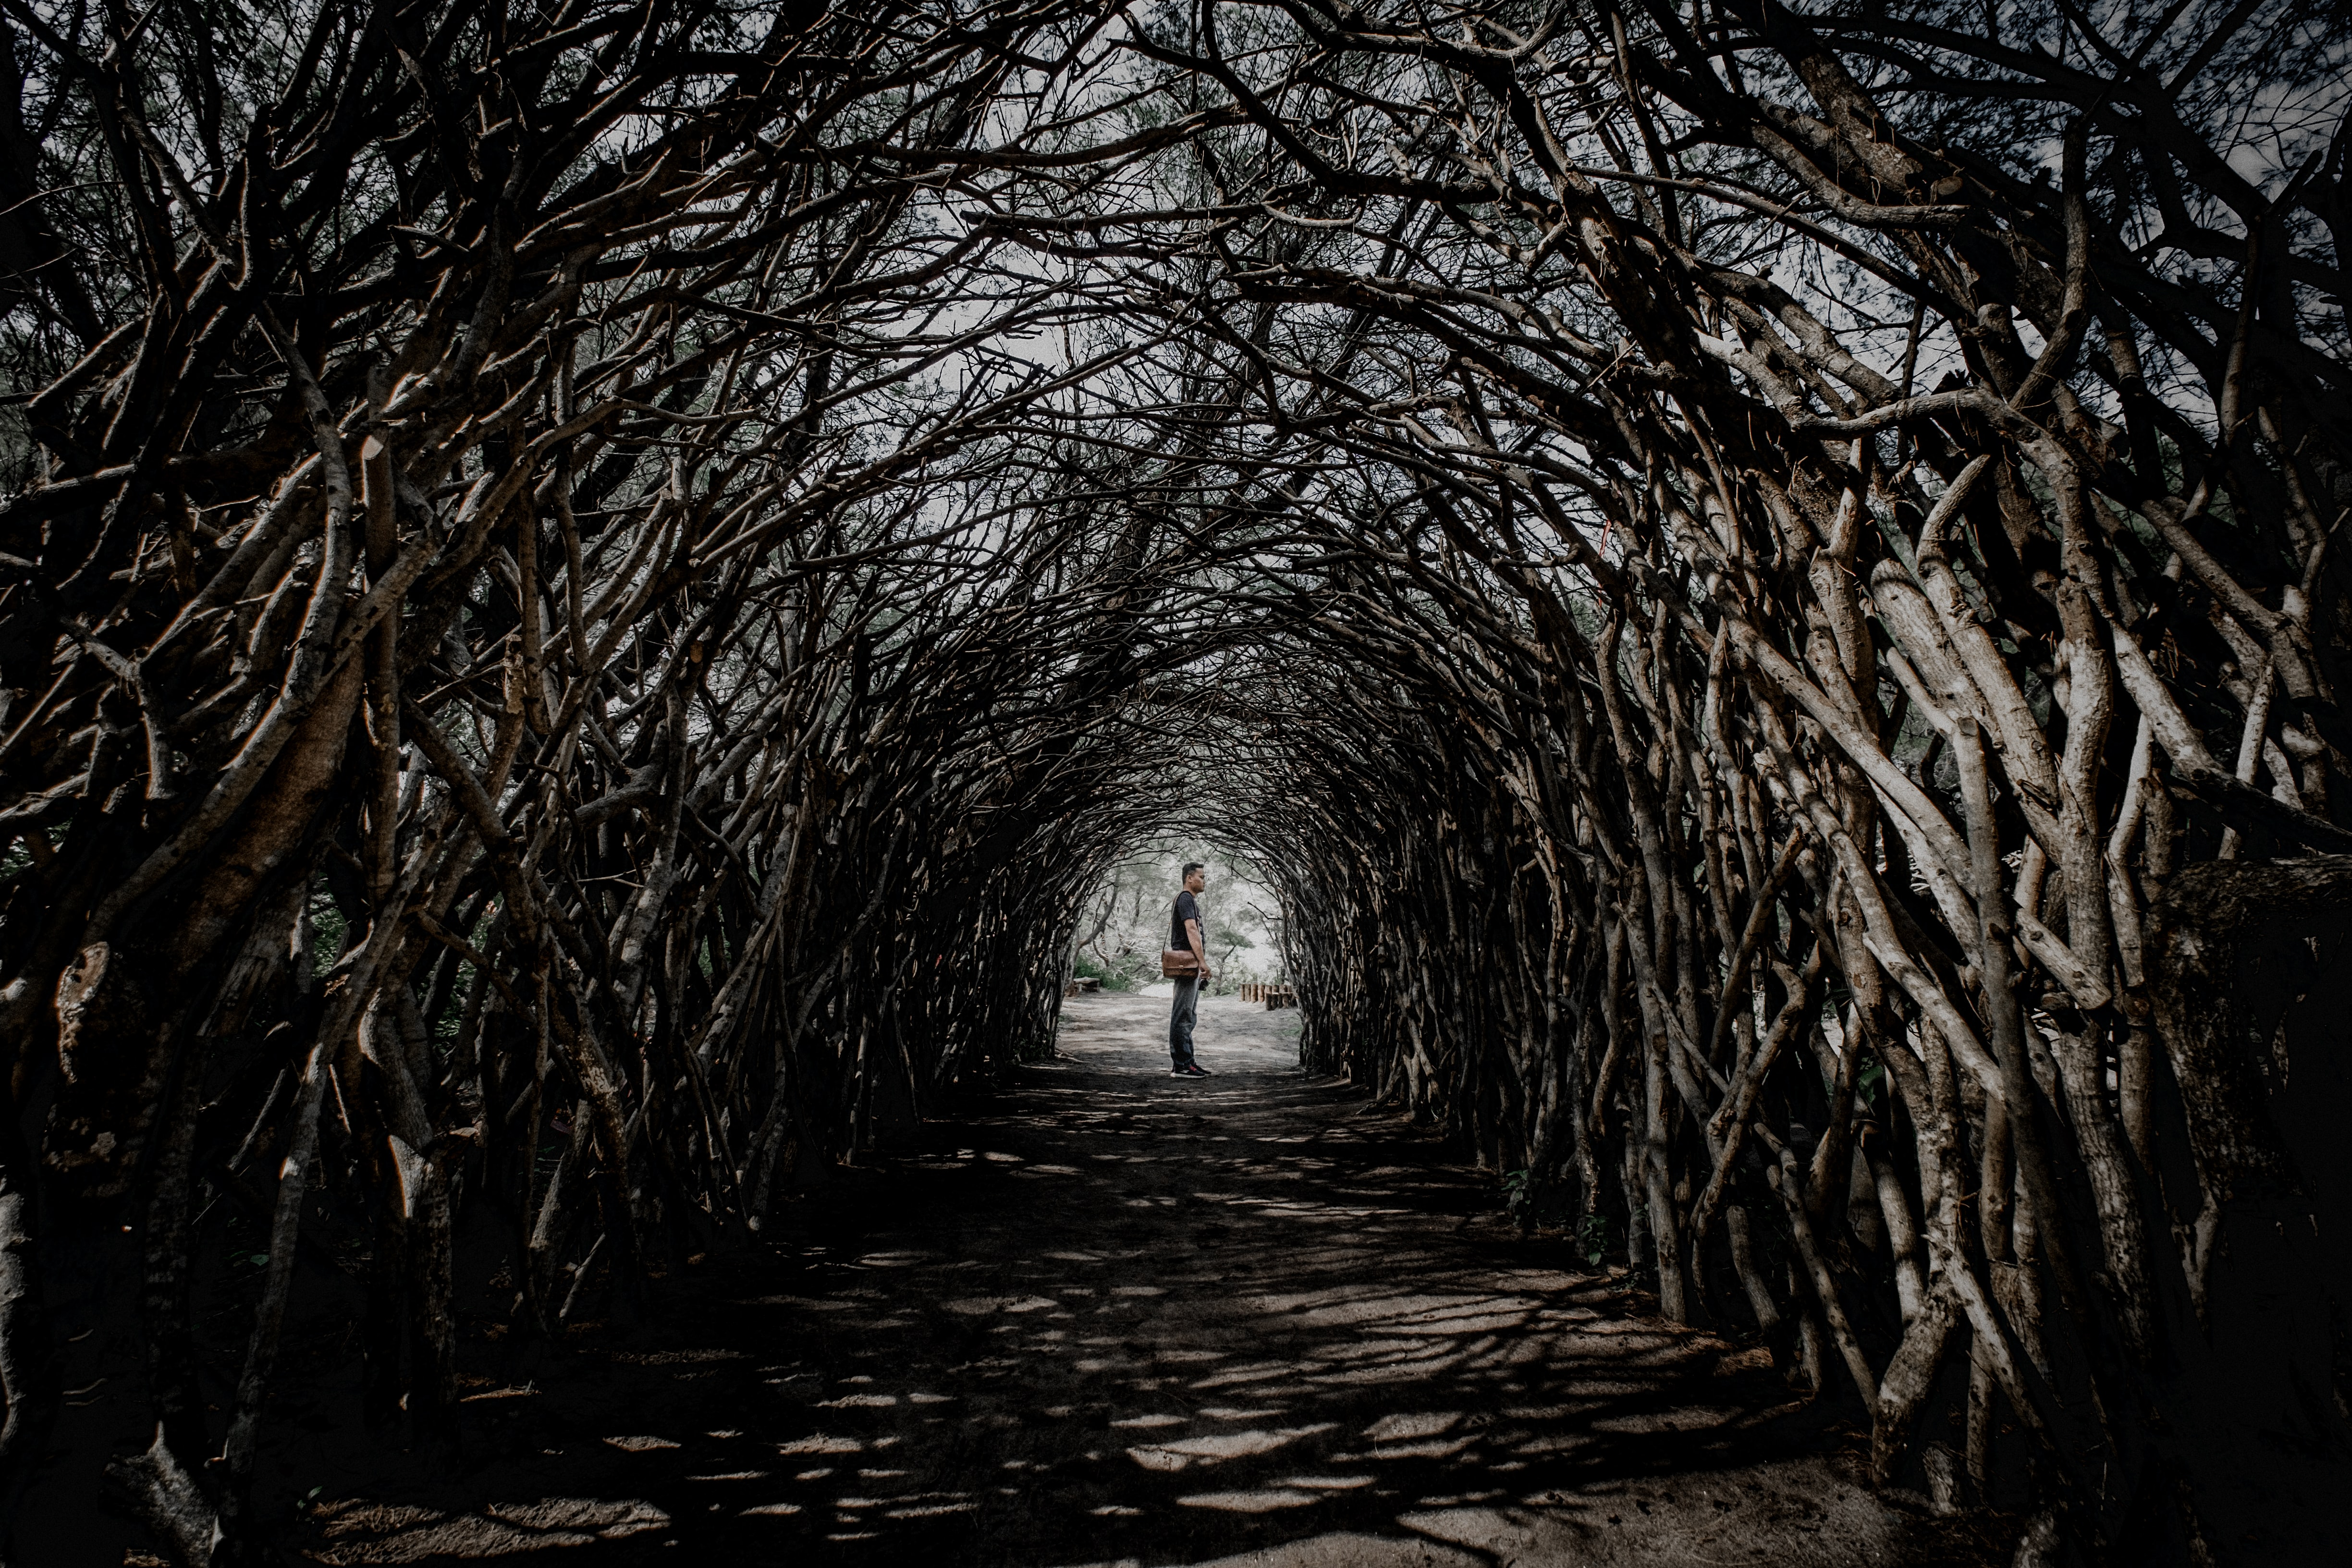 man standing in middle of bare tree pathway during daytime